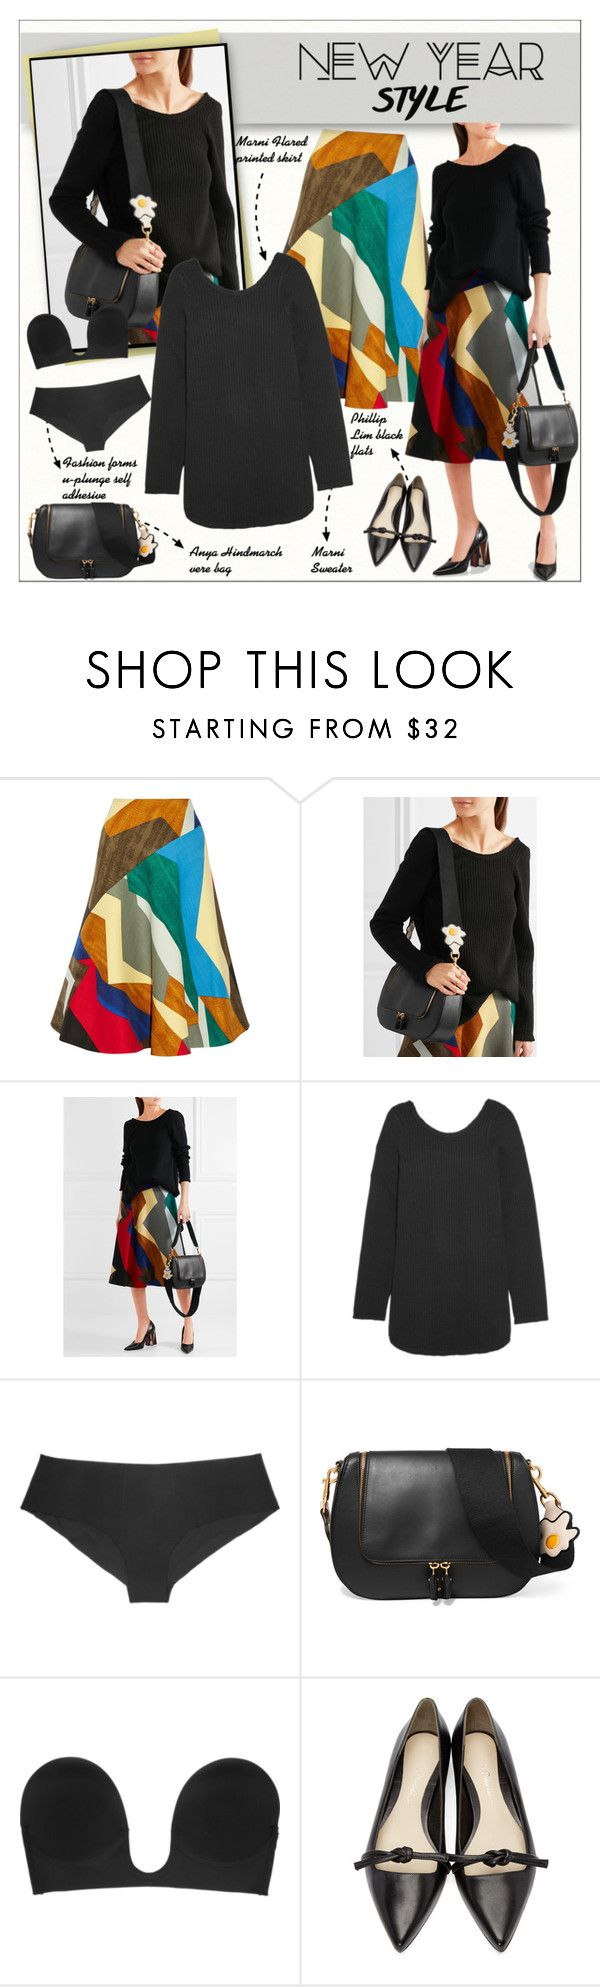 """""""NEW YEAR  -  Style"""" by alves-nogueira ❤ liked on Polyvore featuring Marni, La Perla, Anya Hindmarch, Fashion Forms and 3.1 Phillip Lim"""